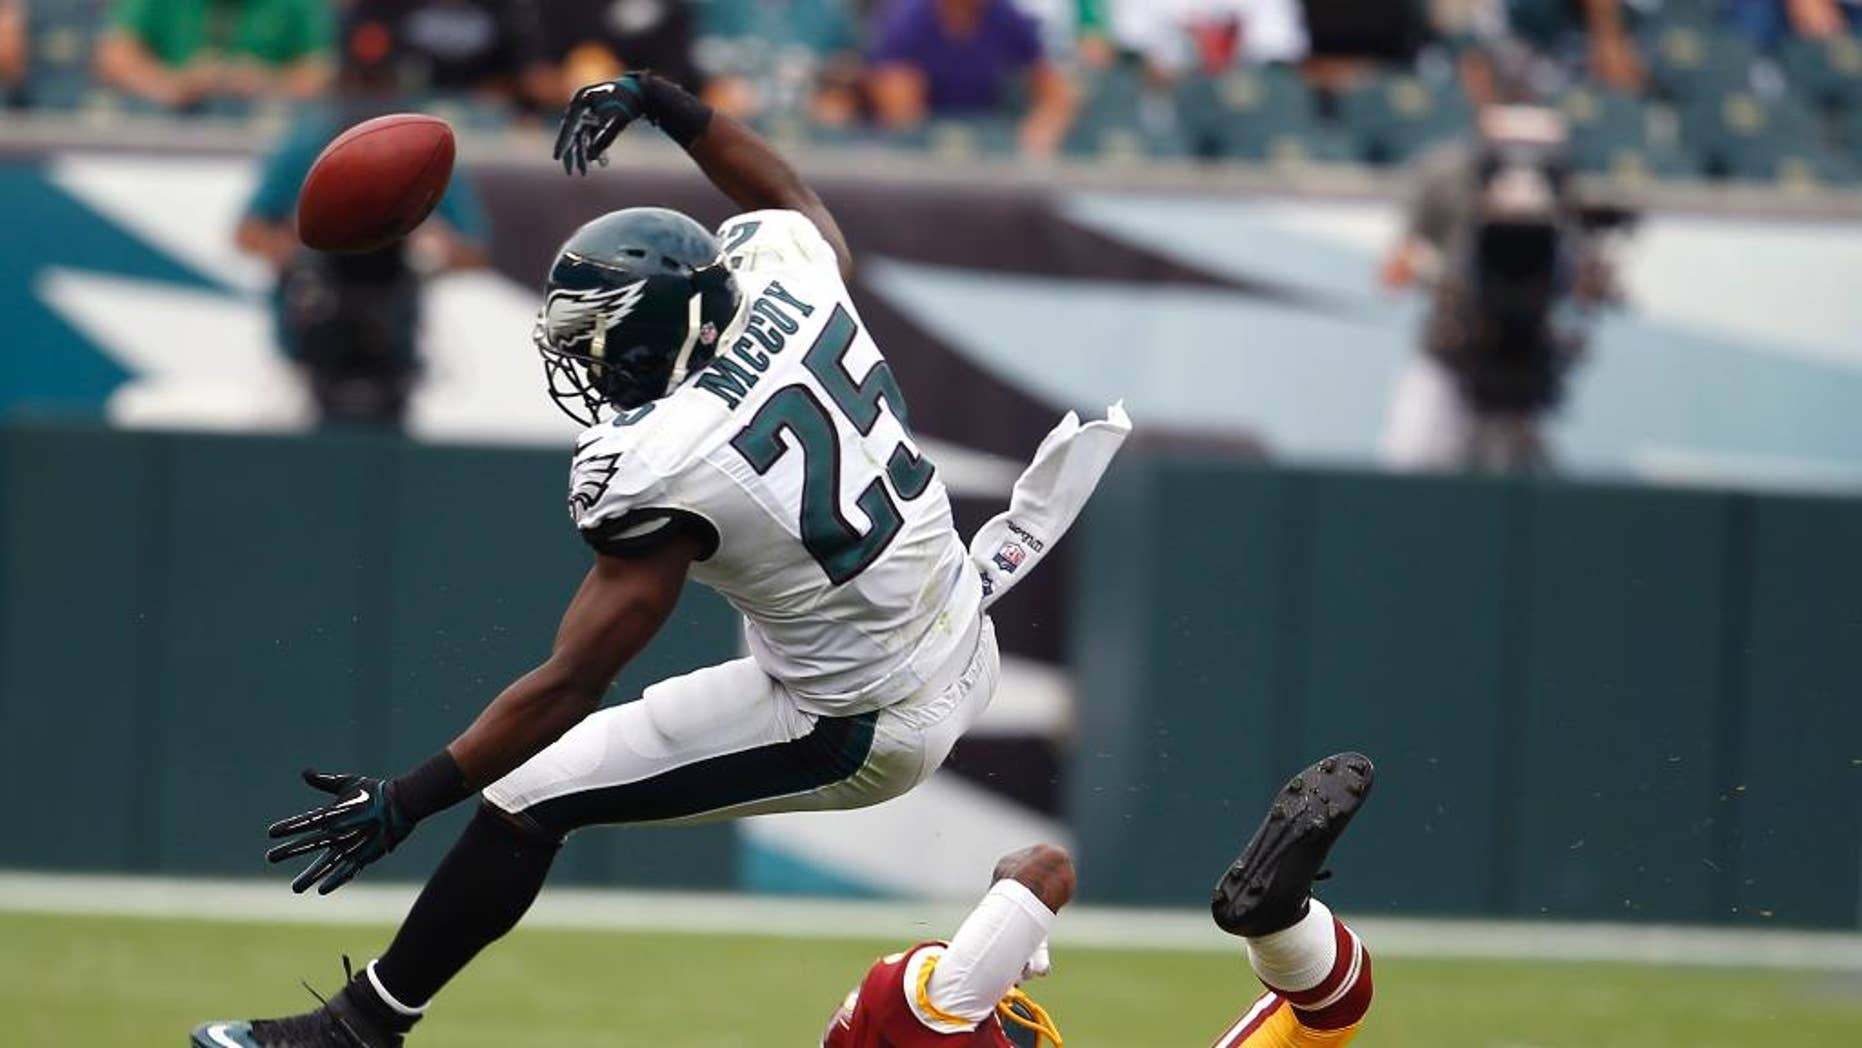 Philadelphia Eagles running back LeSean McCoy (25) fumbles the ball as Washington Redskins cornerback DeAngelo Hall (23) defends on the play during the second half of an NFL football game, Sunday, Sept. 21, 2014, in Philadelphia. (AP Photo/Michael Perez)